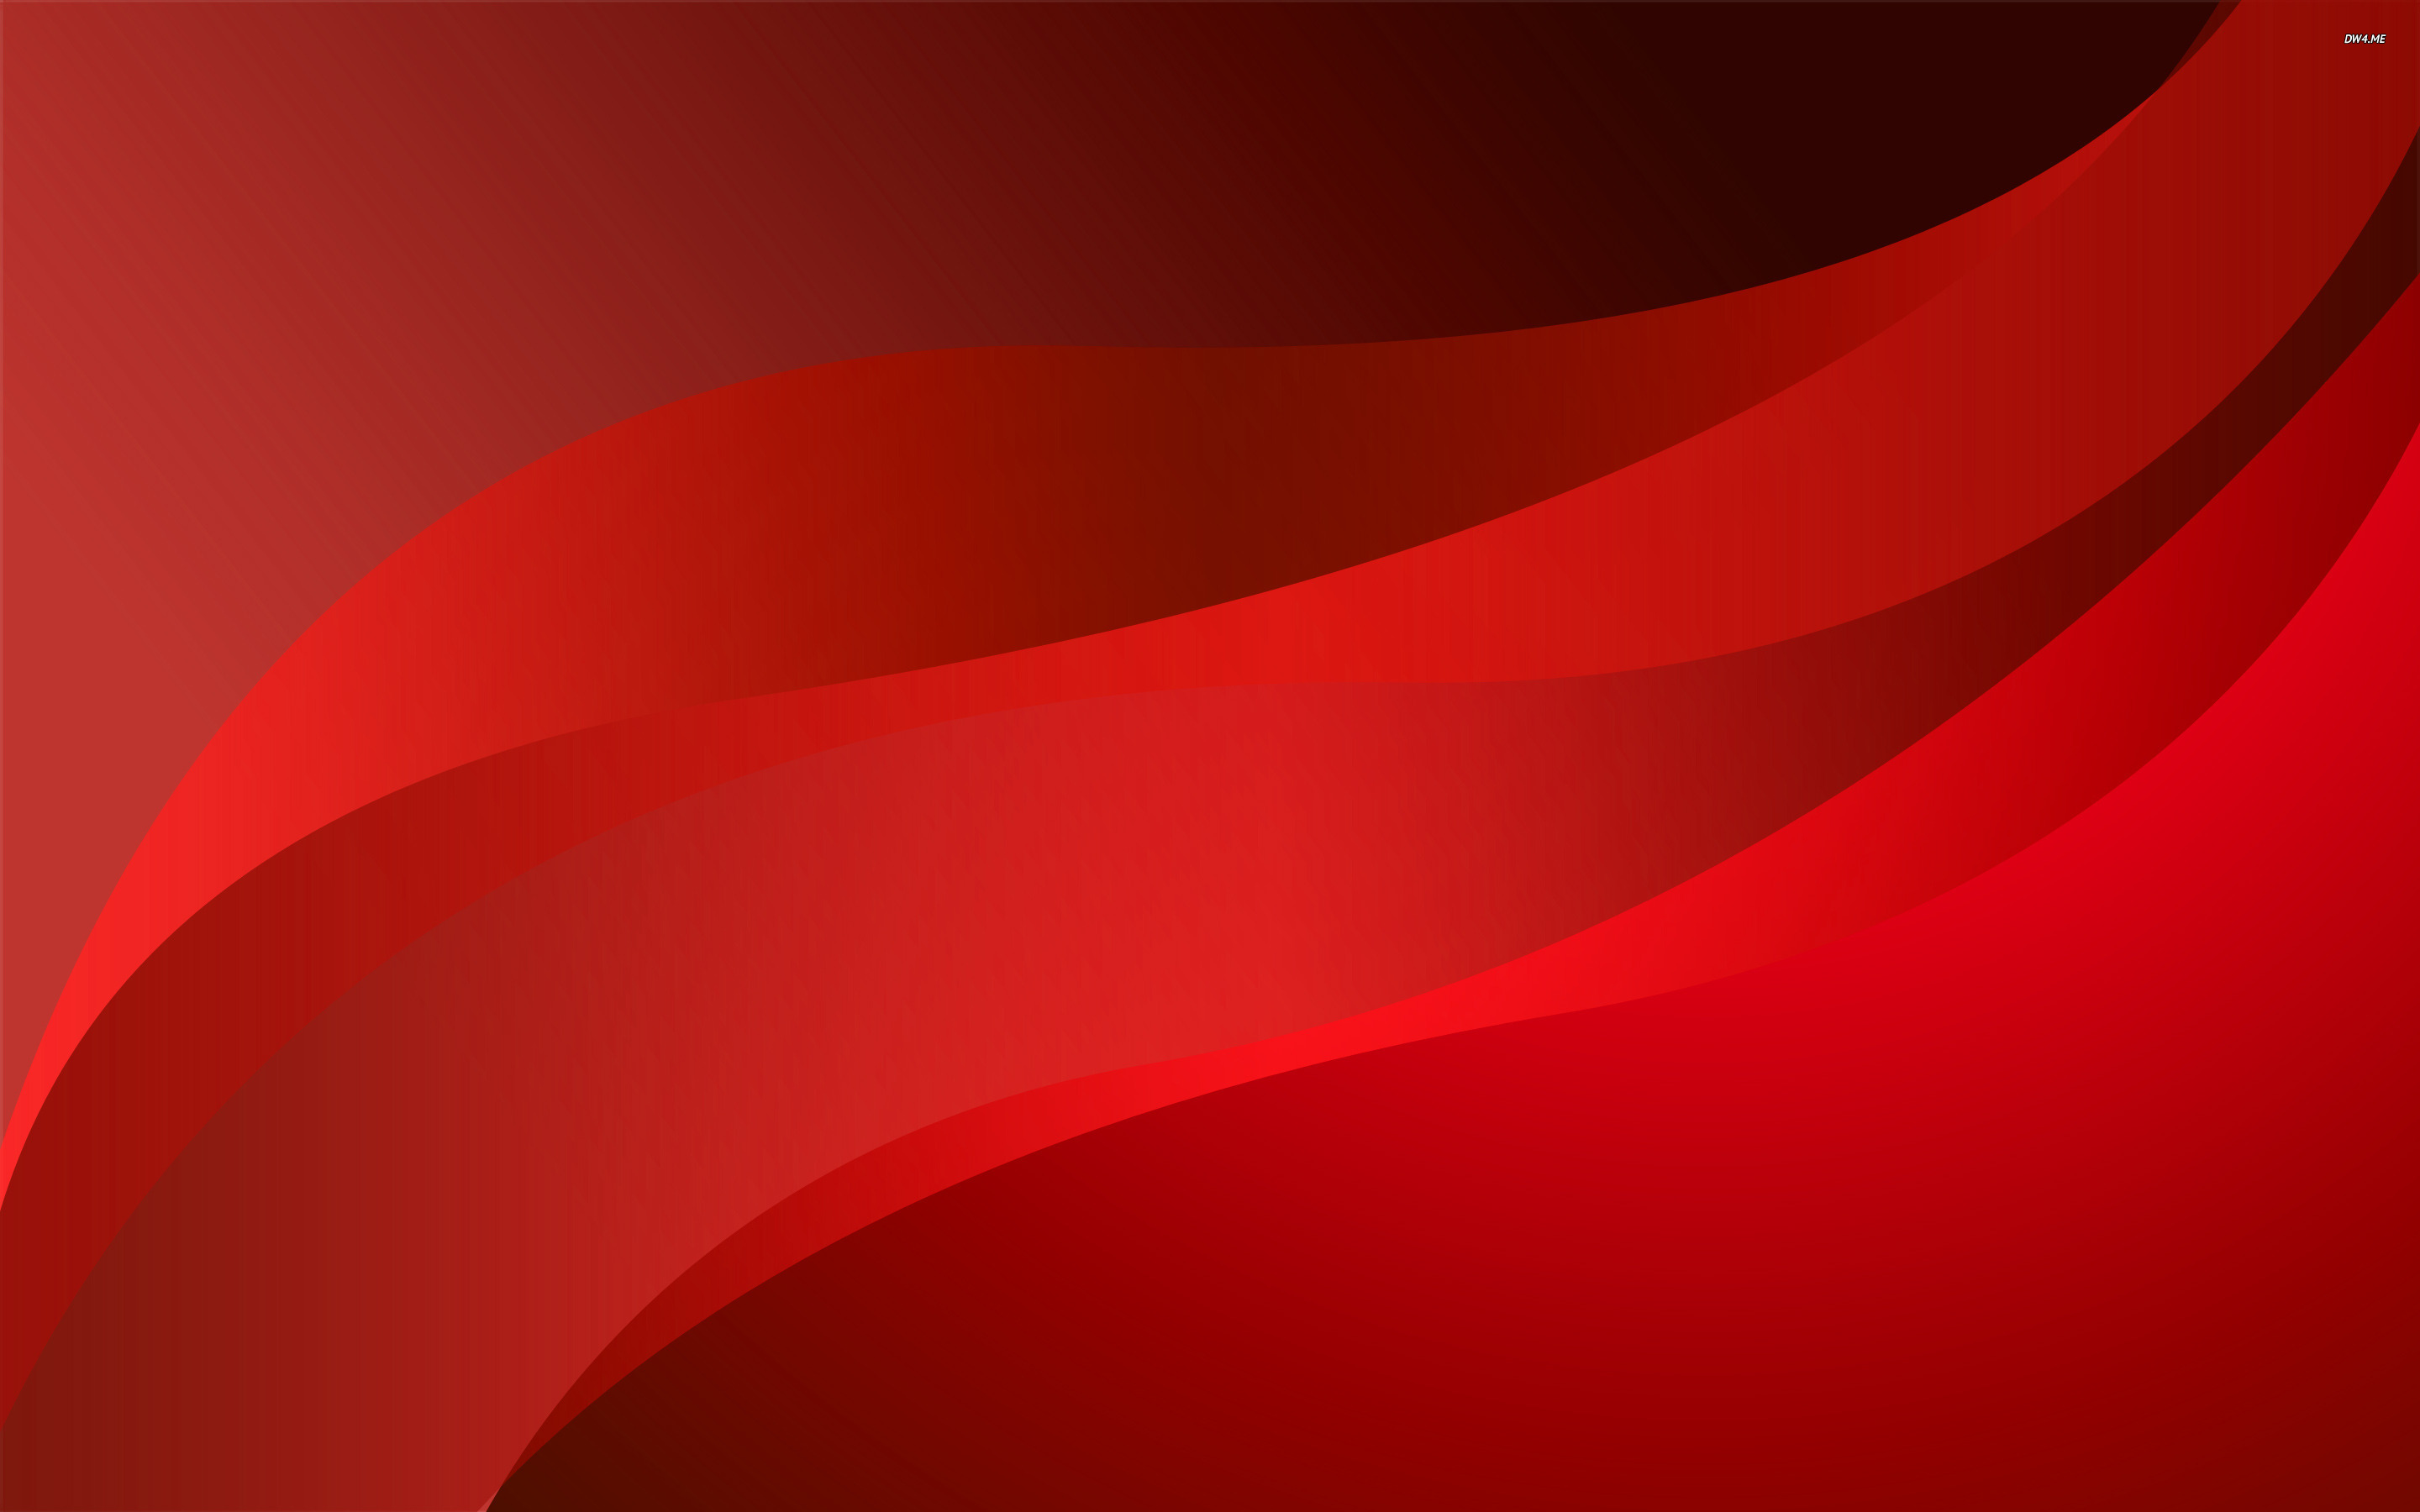 red curves abstract wallpaper